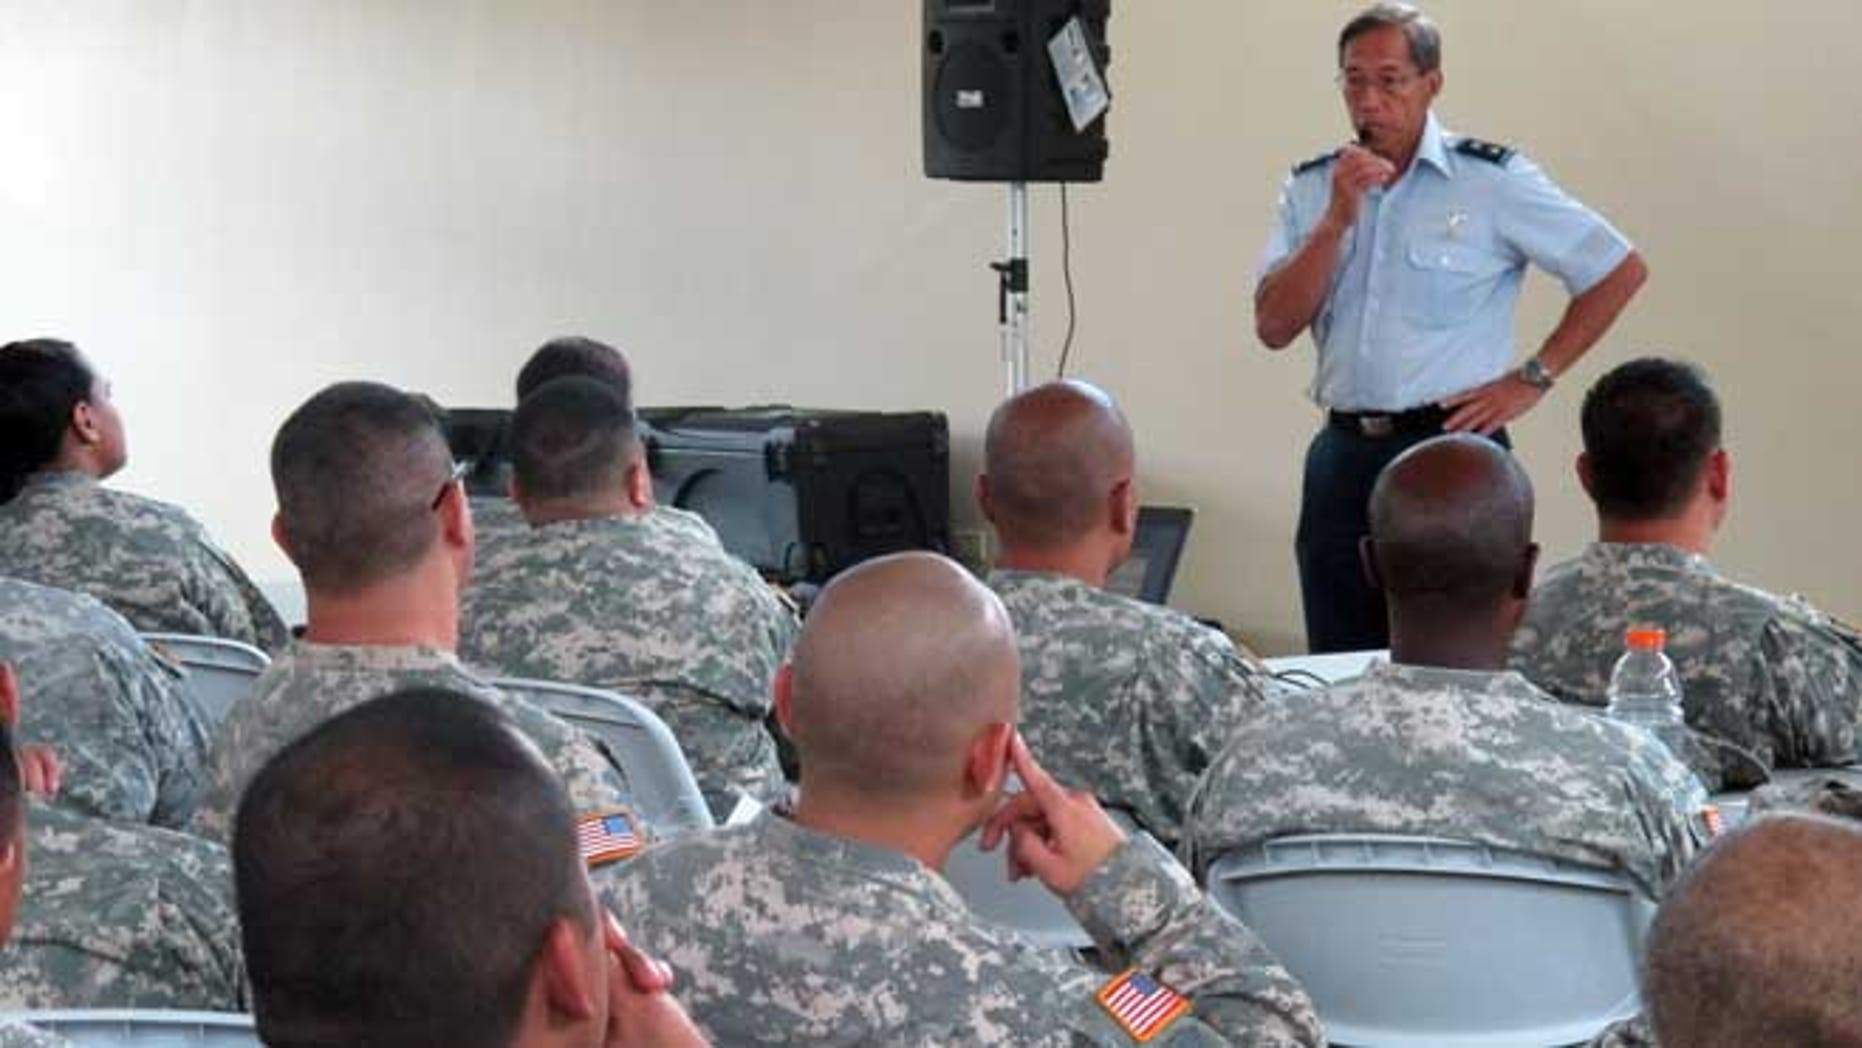 July 1, 2013: Maj. Gen. Darryll Wong, Hawaii National Guard commander, speaks to soldiers and airmen about furloughs in Kapolei, Hawaii. More than 1,100 National Guard soldiers and airmen in Hawaii and thousands in other states  will be living with 20 percent less pay over the next three months as the Defense Department carries out automatic federal budget cuts.